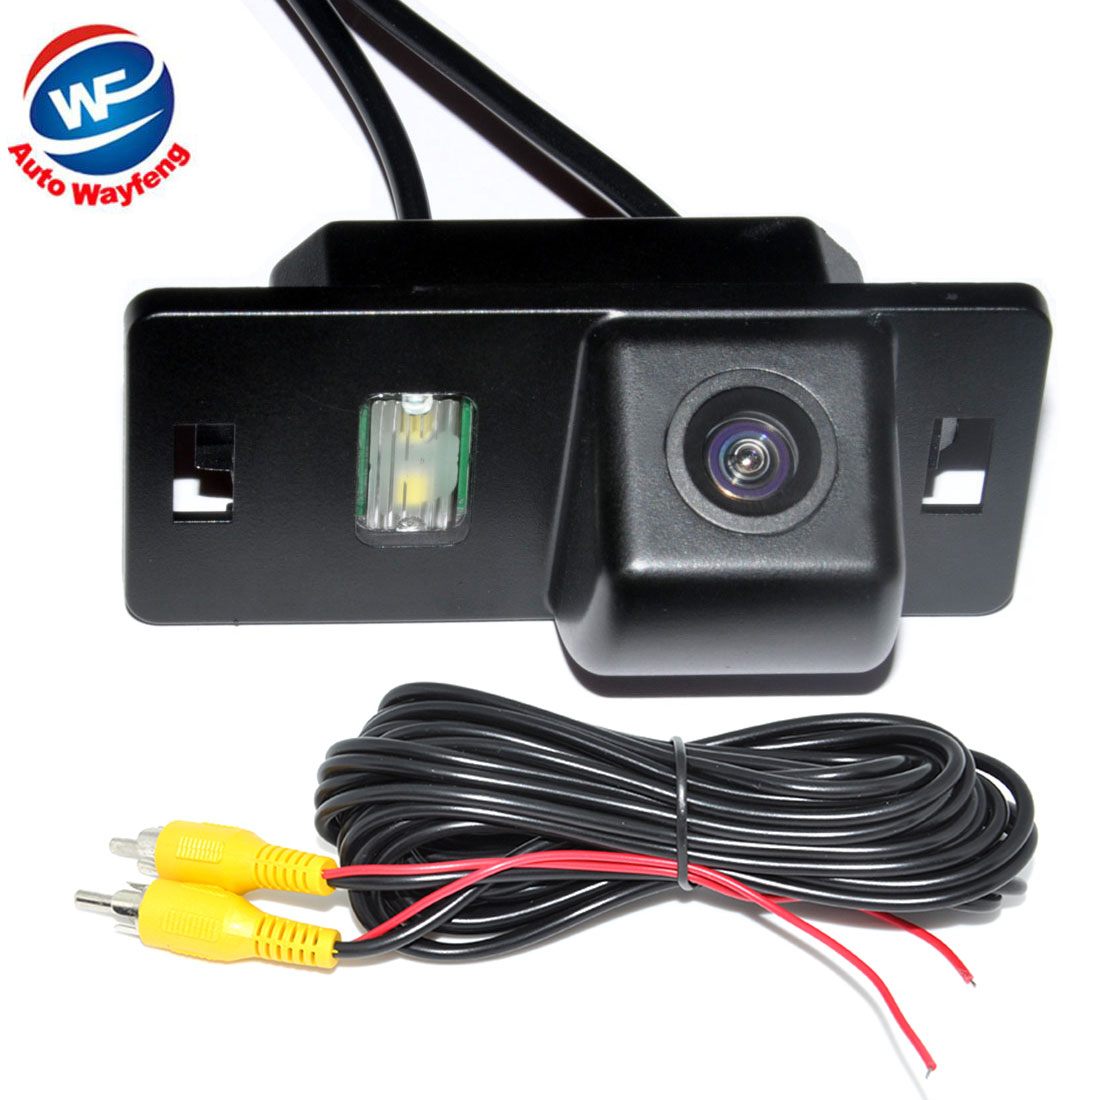 Car Vehicle Rearview <font><b>Camera</b></font> For <font><b>Audi</b></font> A3/<font><b>A4</b></font>(B6/B7/B8) /Q5/Q7/A8/S8 Backup Review Rear View Parking Reversing <font><b>Camera</b></font> image